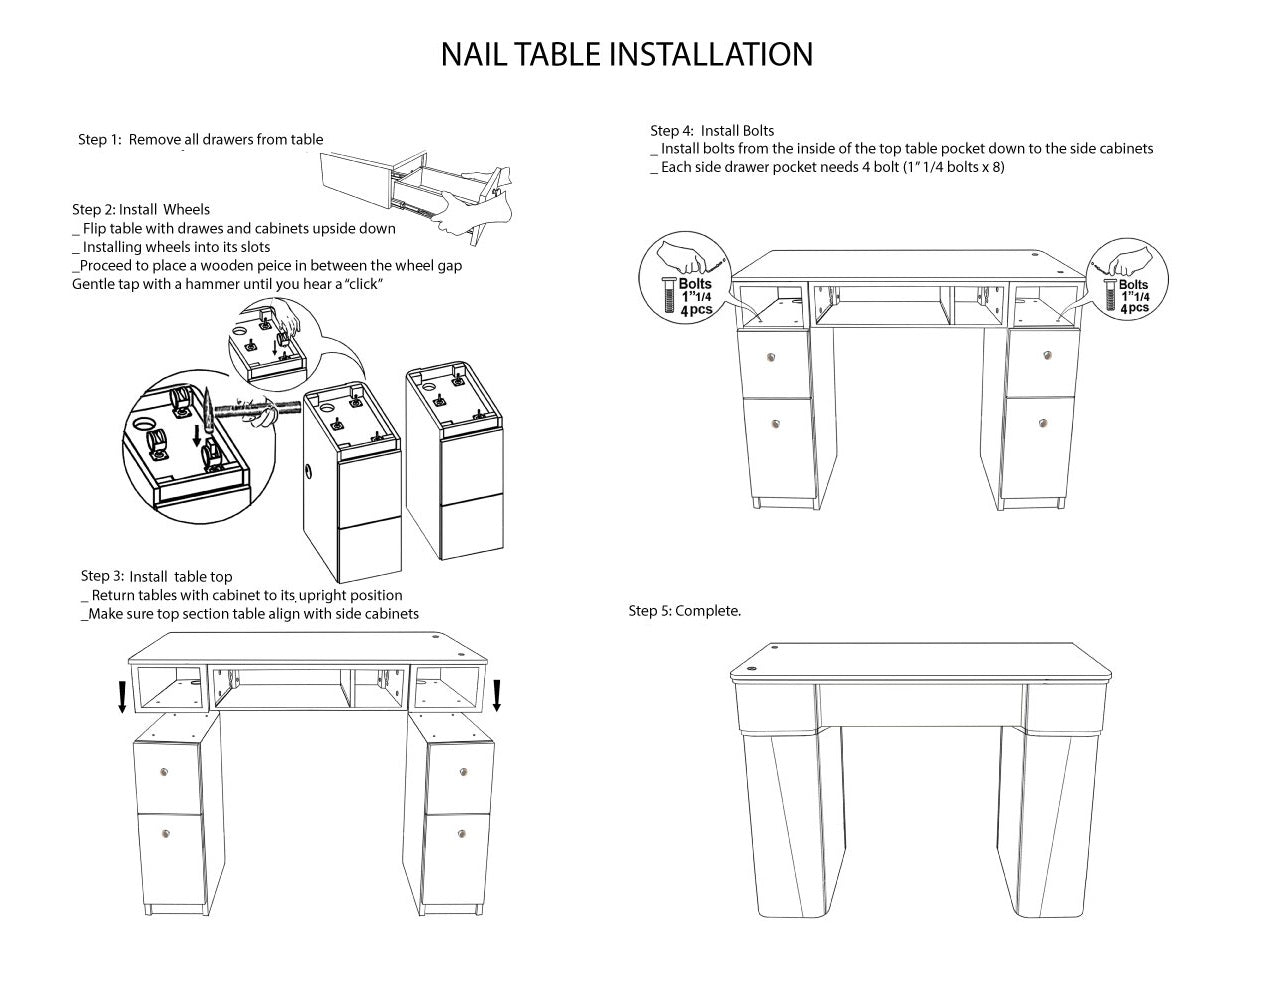 Manicure Table Installation